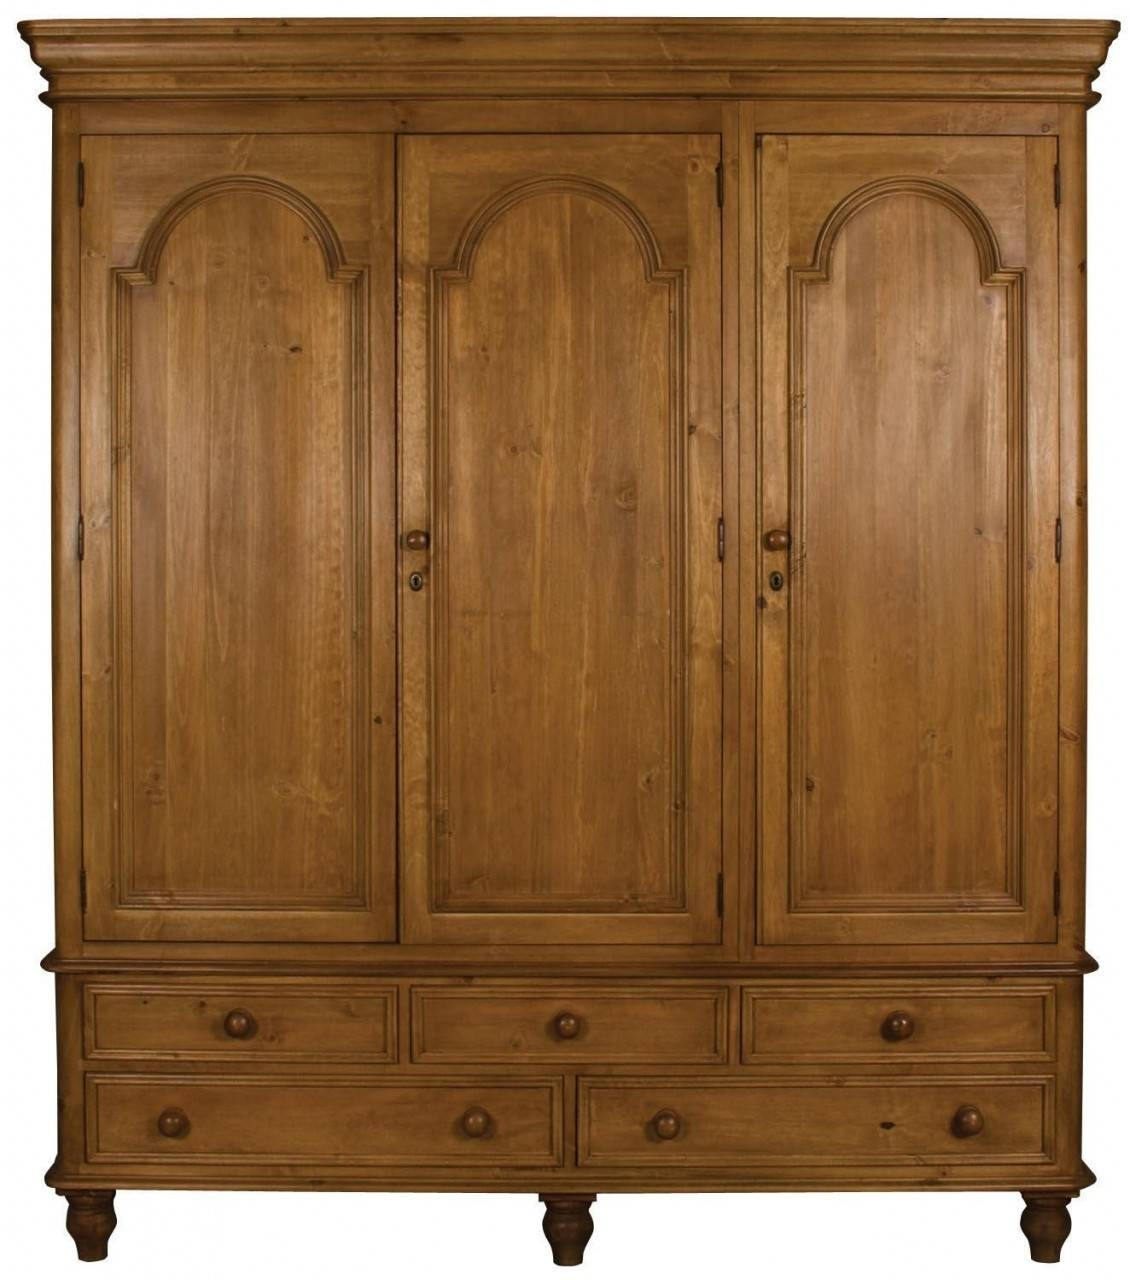 Buy Ascot Pine Wardrobe - Triple 3 Doors 5 Drawers Online - Cfs Uk within Single Pine Wardrobes With Drawers (Image 4 of 15)